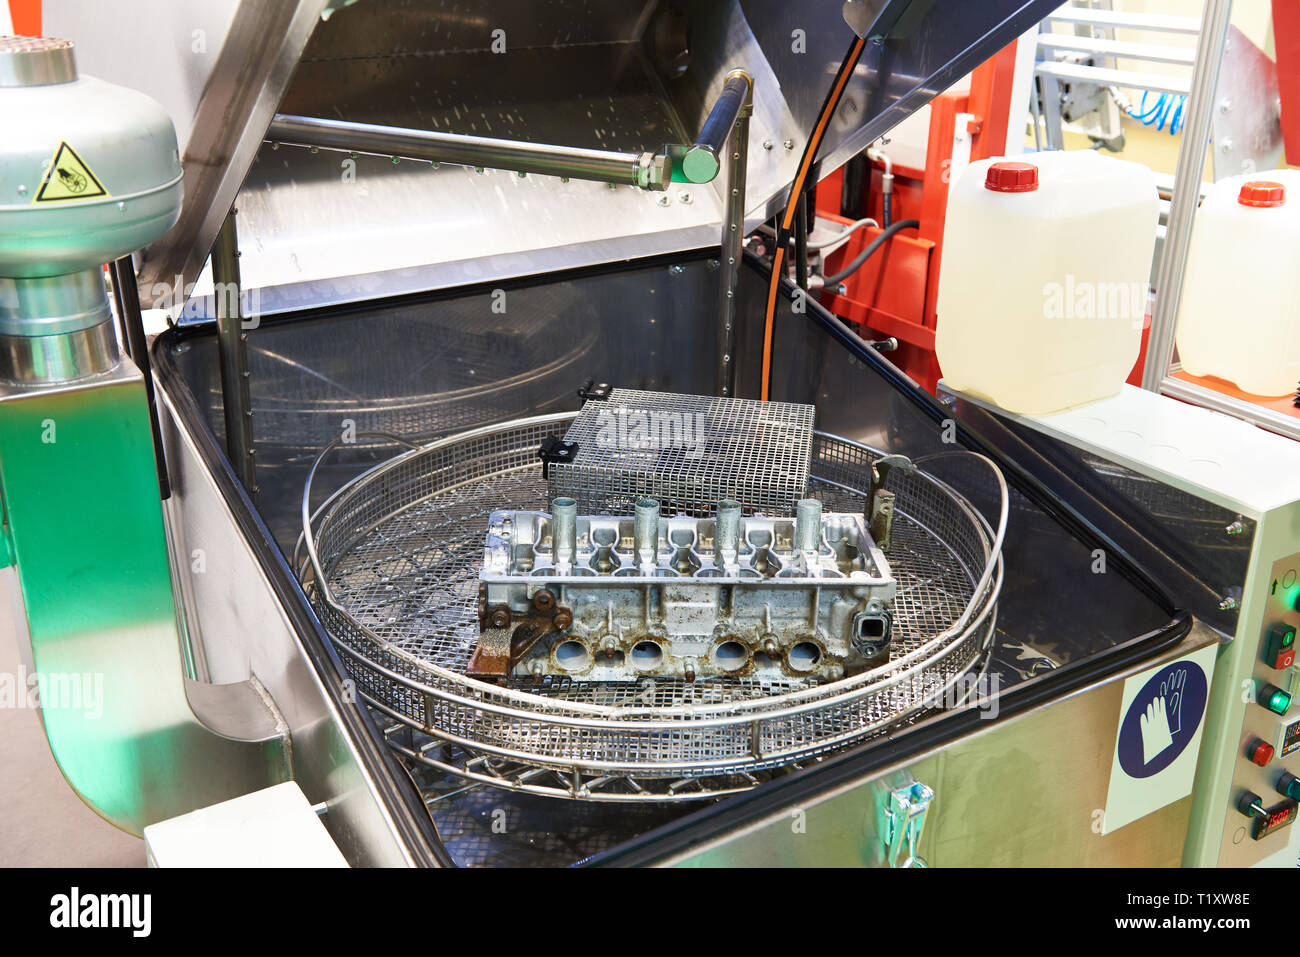 Automatic washing system for engine parts and assemblies - Stock Image